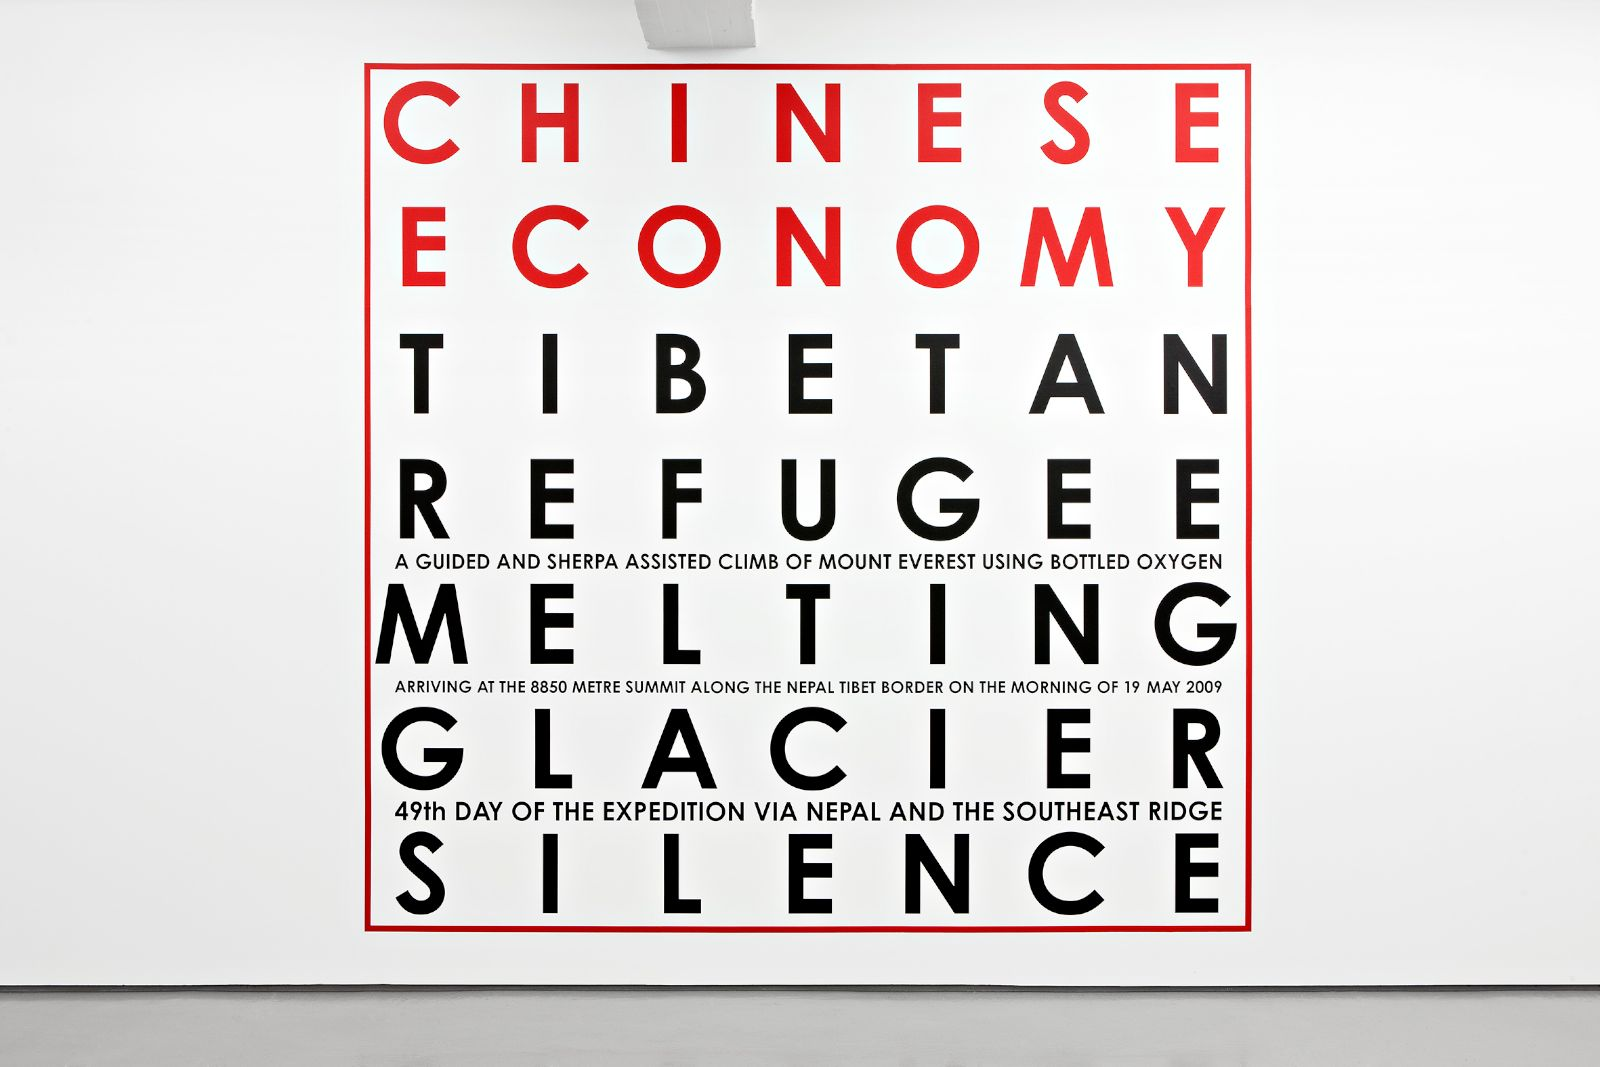 Chinese Economy, Mount Everest 2009, vinyl text on painted wall, 400 x 410 cm, unique